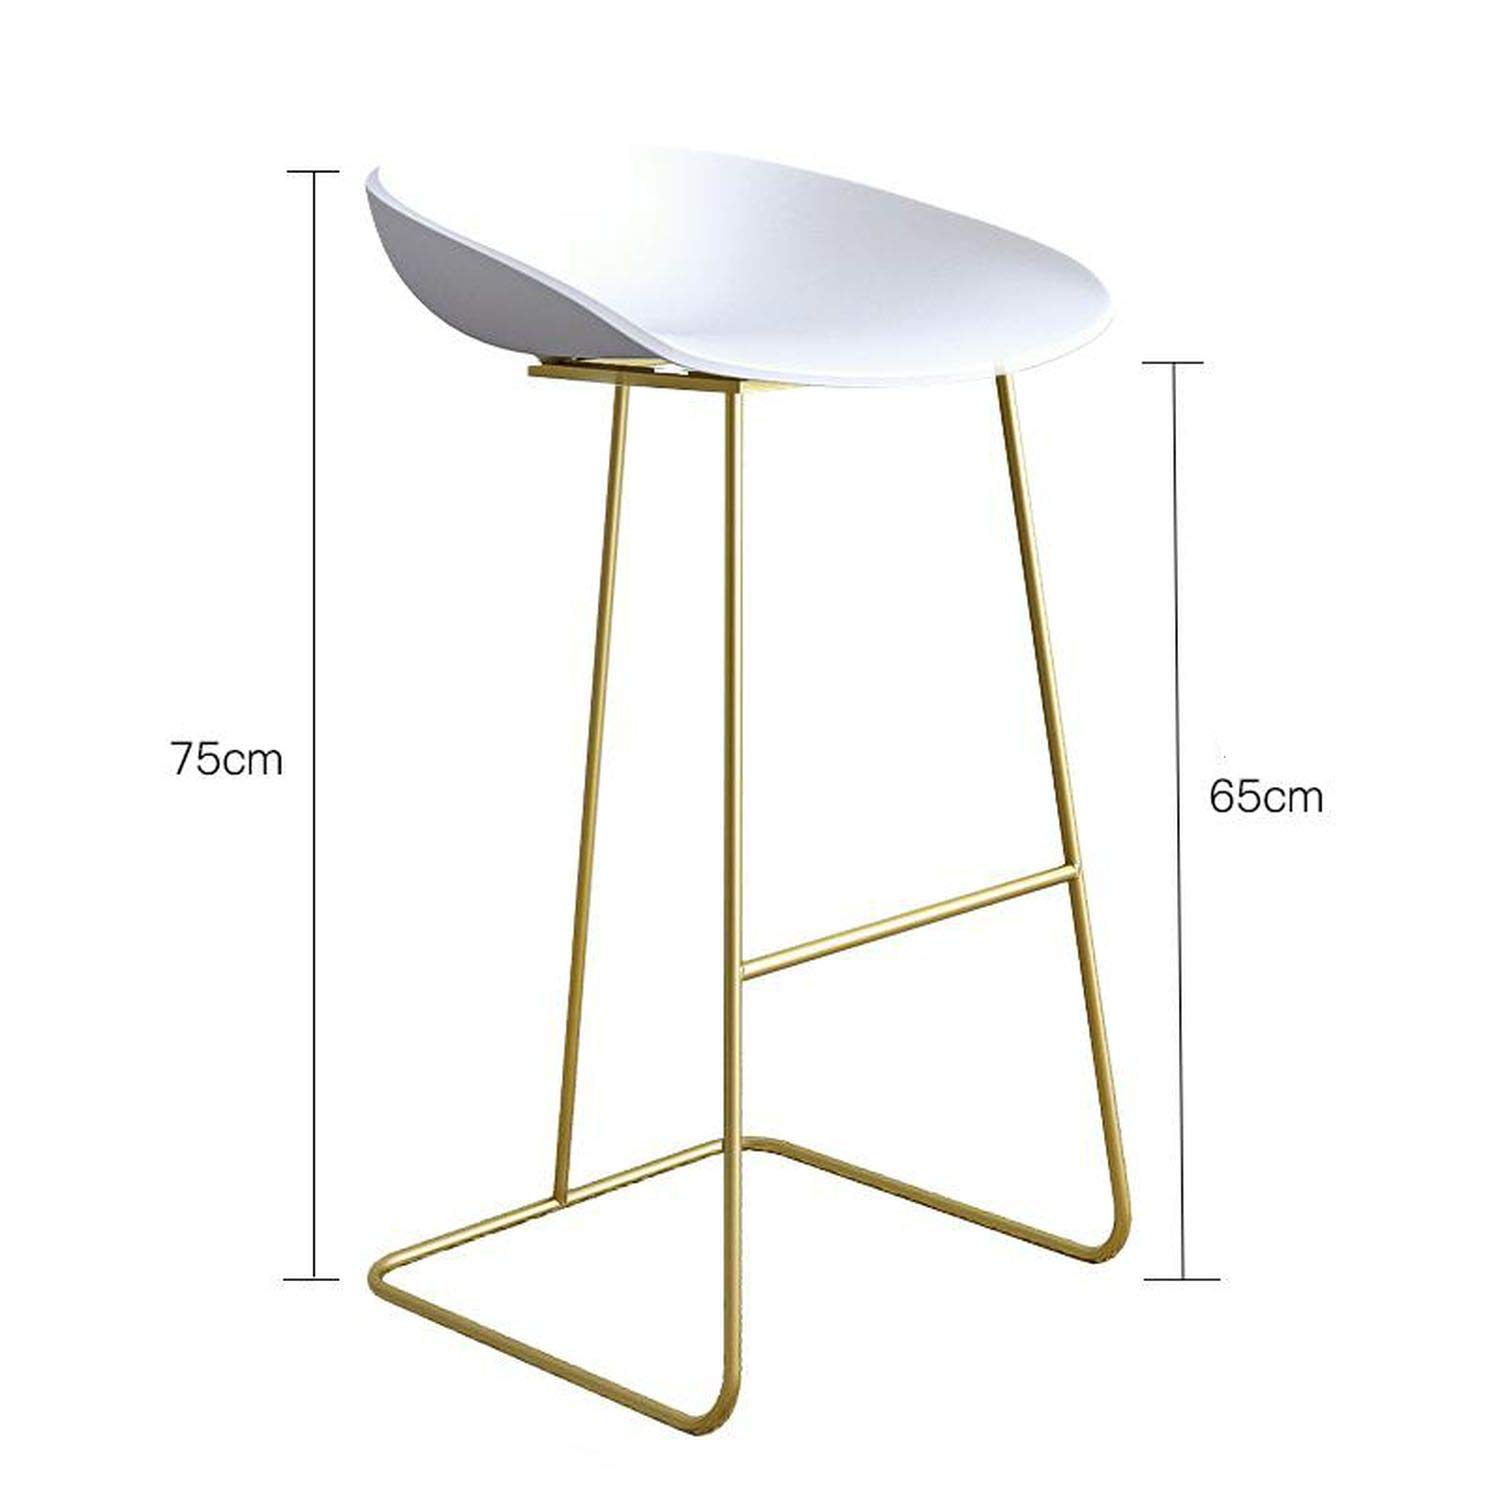 Style 9 one size Bar Stools gold Wrought Iron Stool Modern Minimalist Home Backrest High Chair Creative Net Red Bar,Style 11